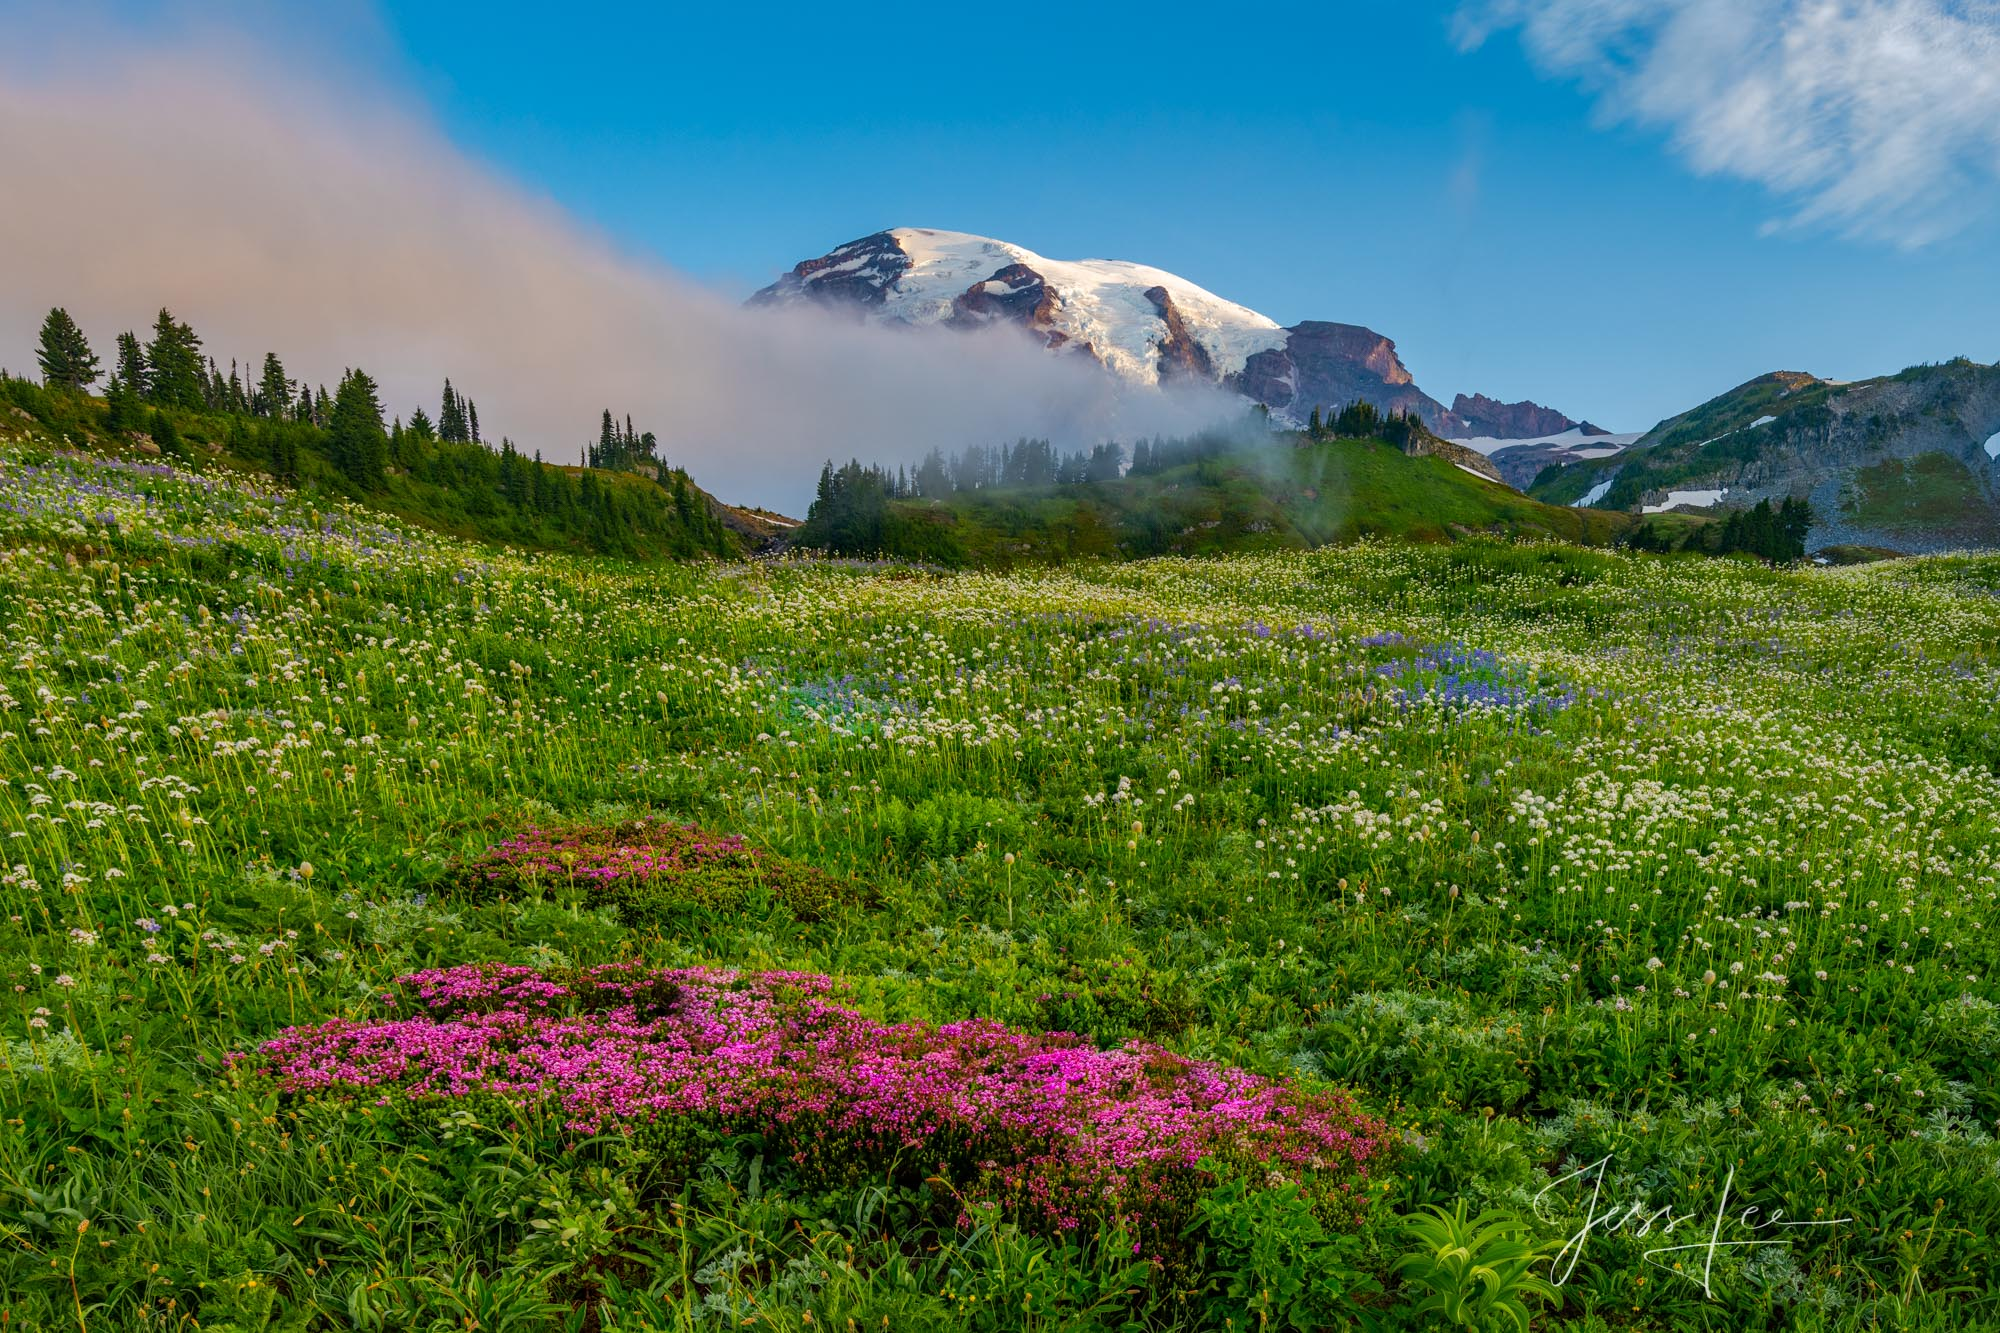 Beautify  your space  with Jess Lee's limited edition photography print, Red White, and Blue, from his Mount Rainier Gallery ....